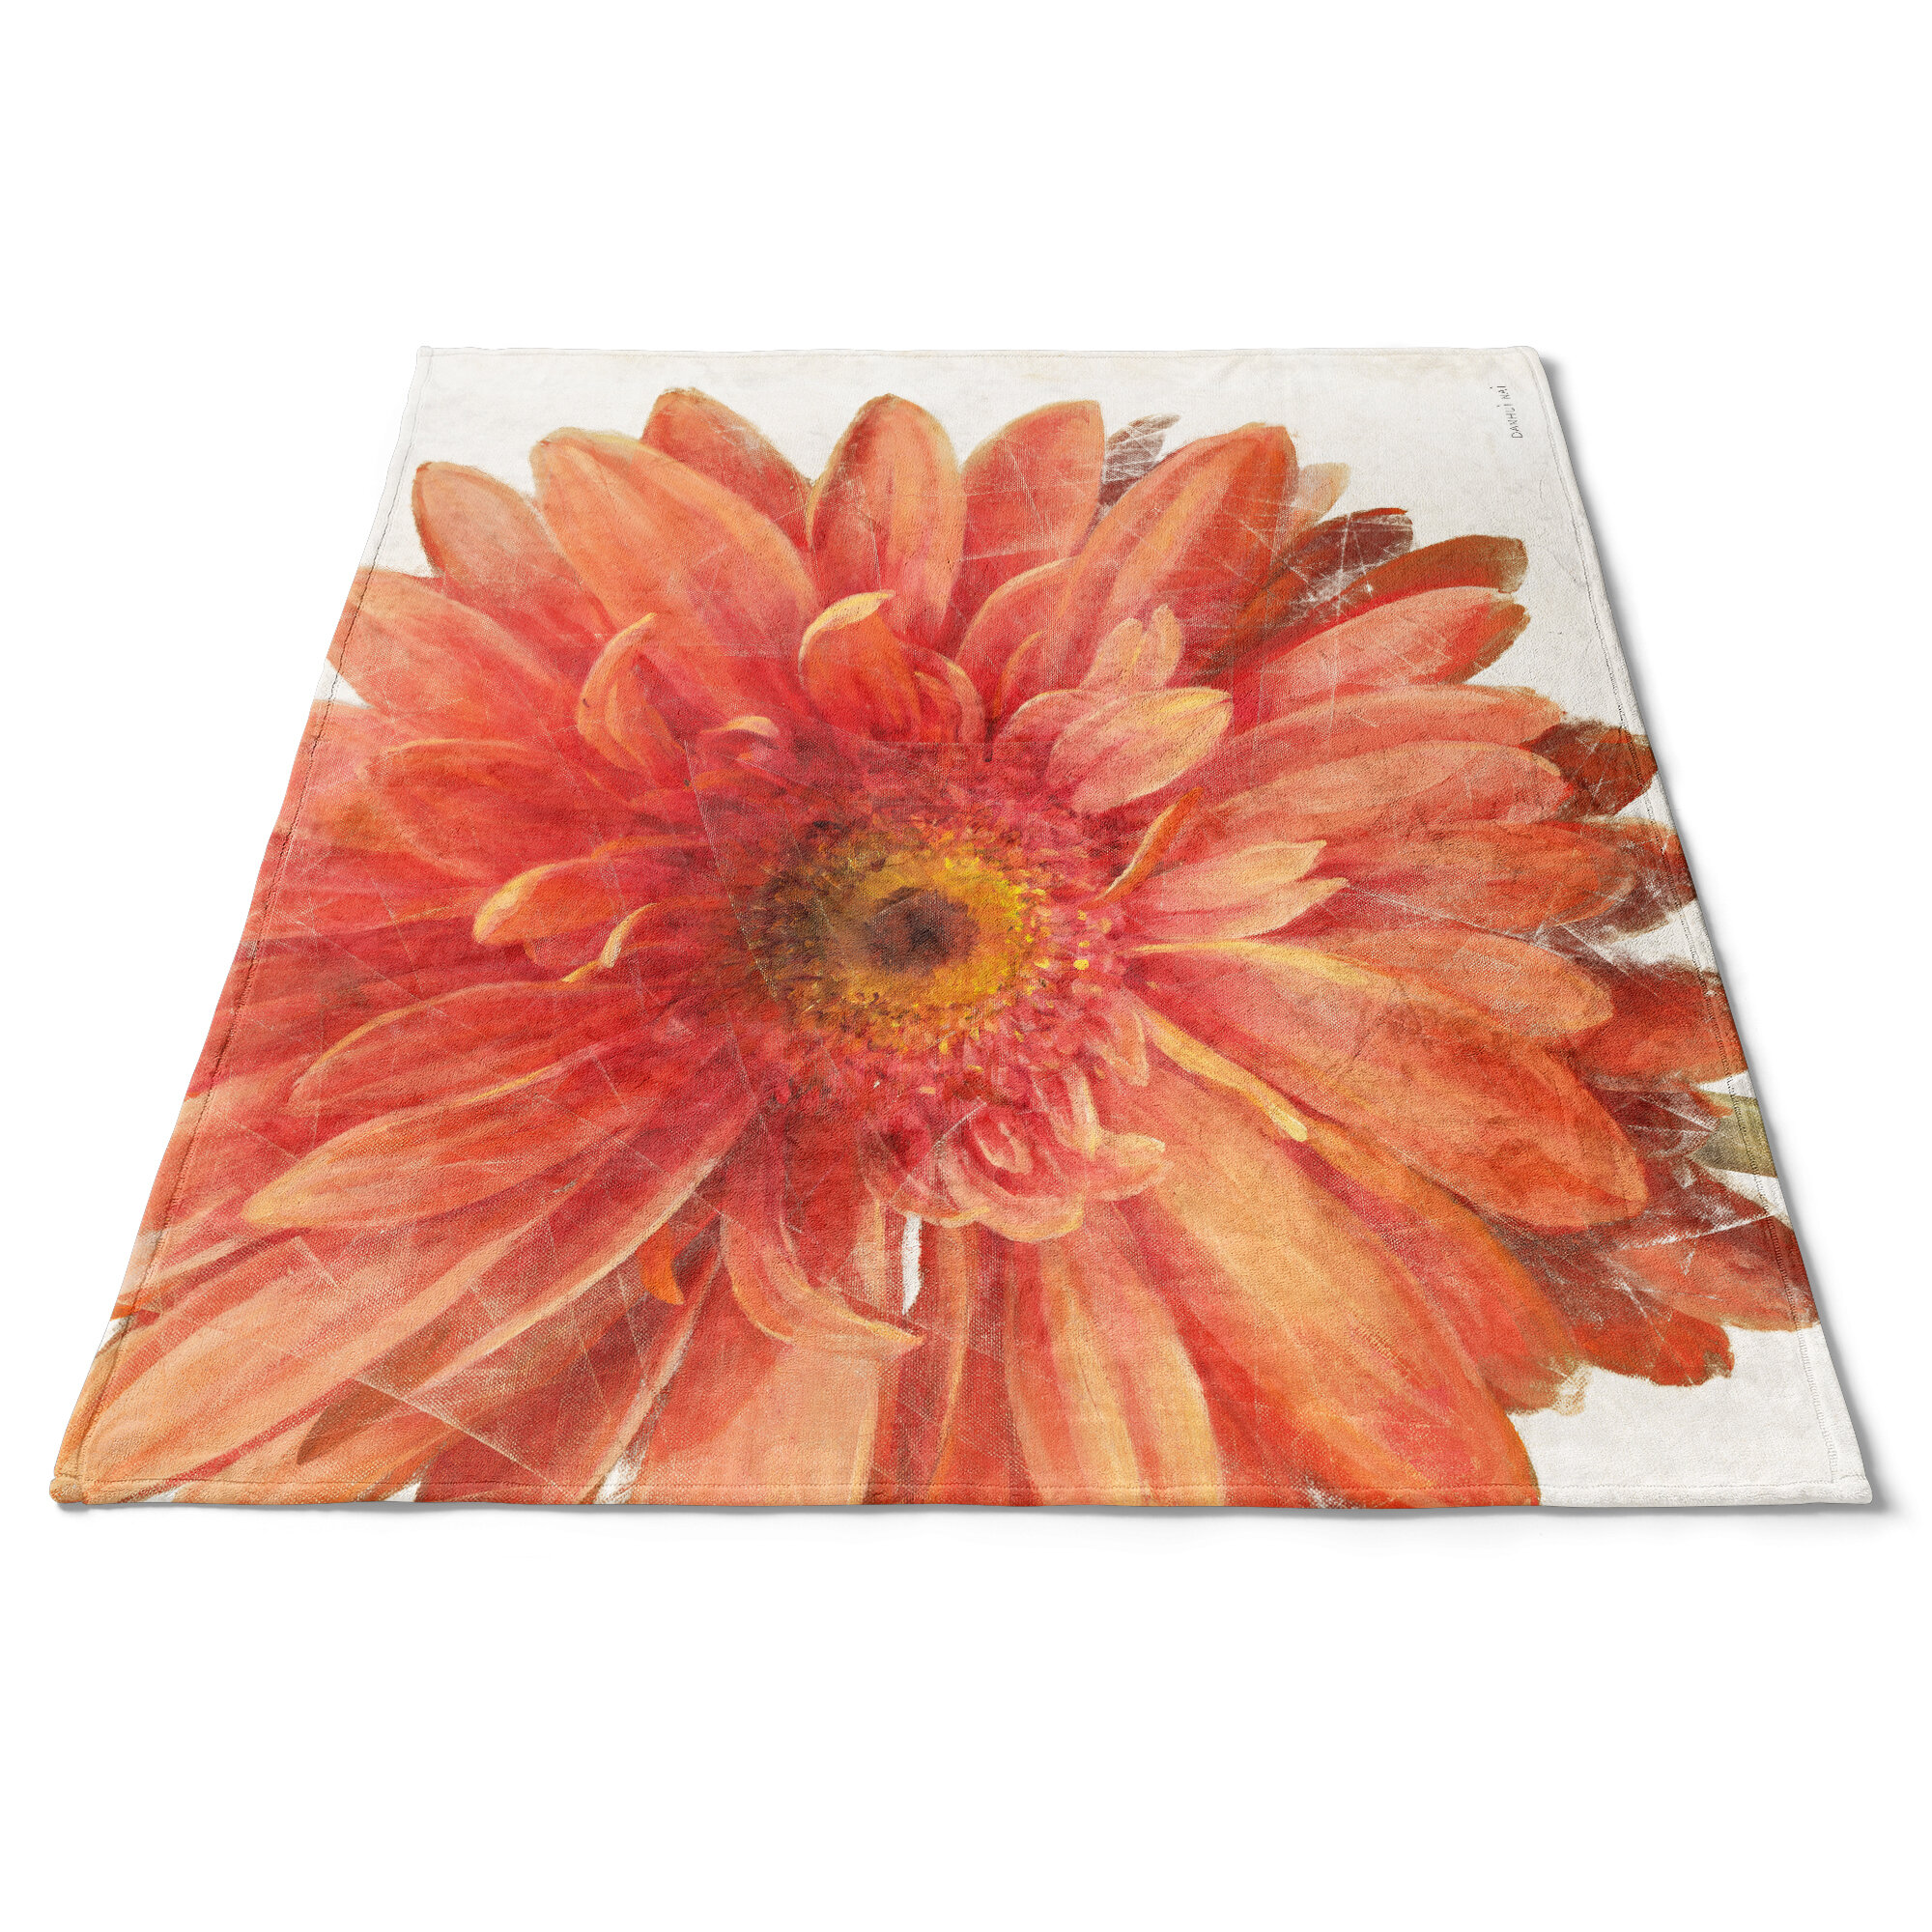 East Urban Home Vivid Daisy Blanket Wayfair